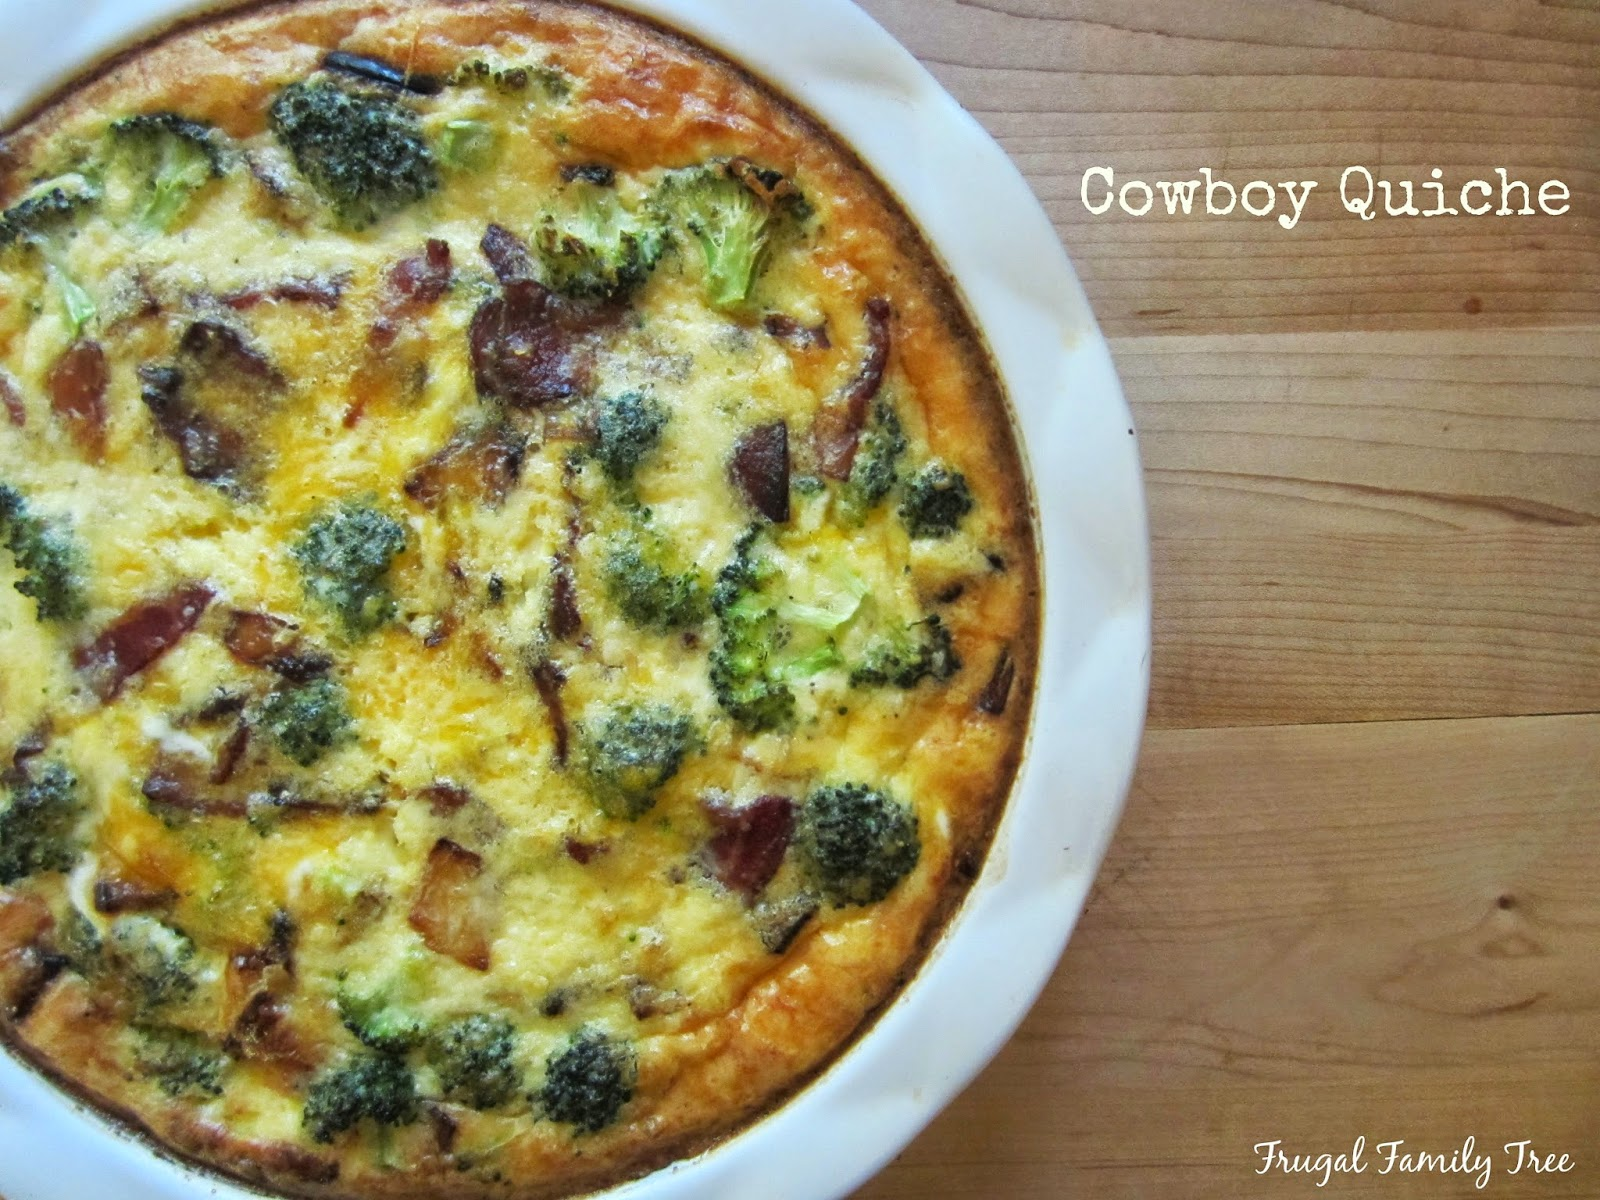 pioneer woman s quiche recipe yummly cowboy quiche the pioneer woman ...